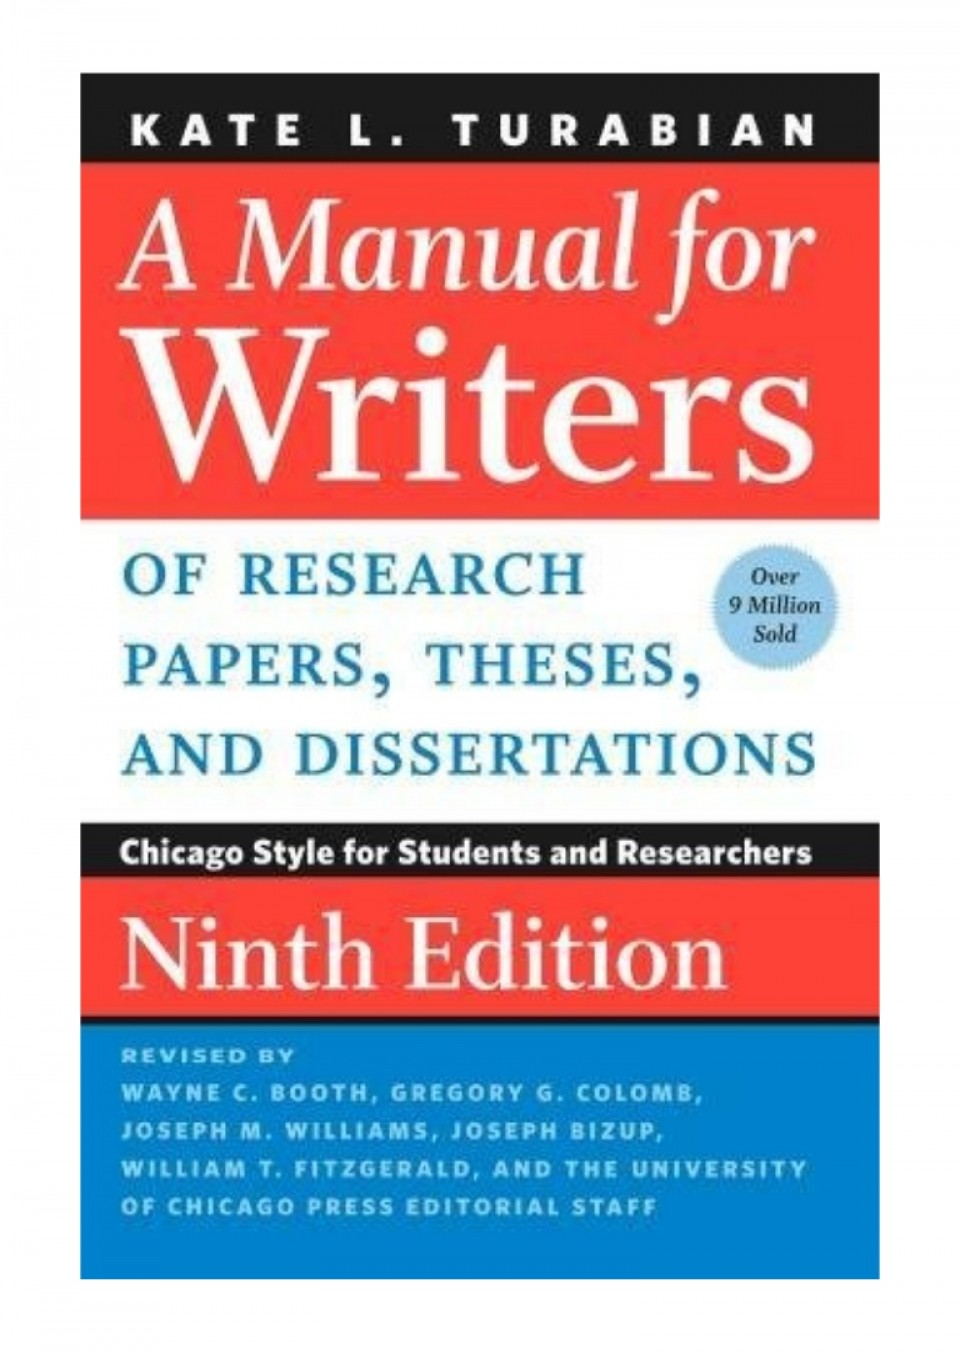 007 022643057x Amanualforwritersofresearchpapersthesesanddissertationsnintheditionbykatel Thumbnail Research Paper Manual For Writers Of Papers Theses And Sensational A Dissertations Ed. 8 8th Edition Ninth Pdf 960